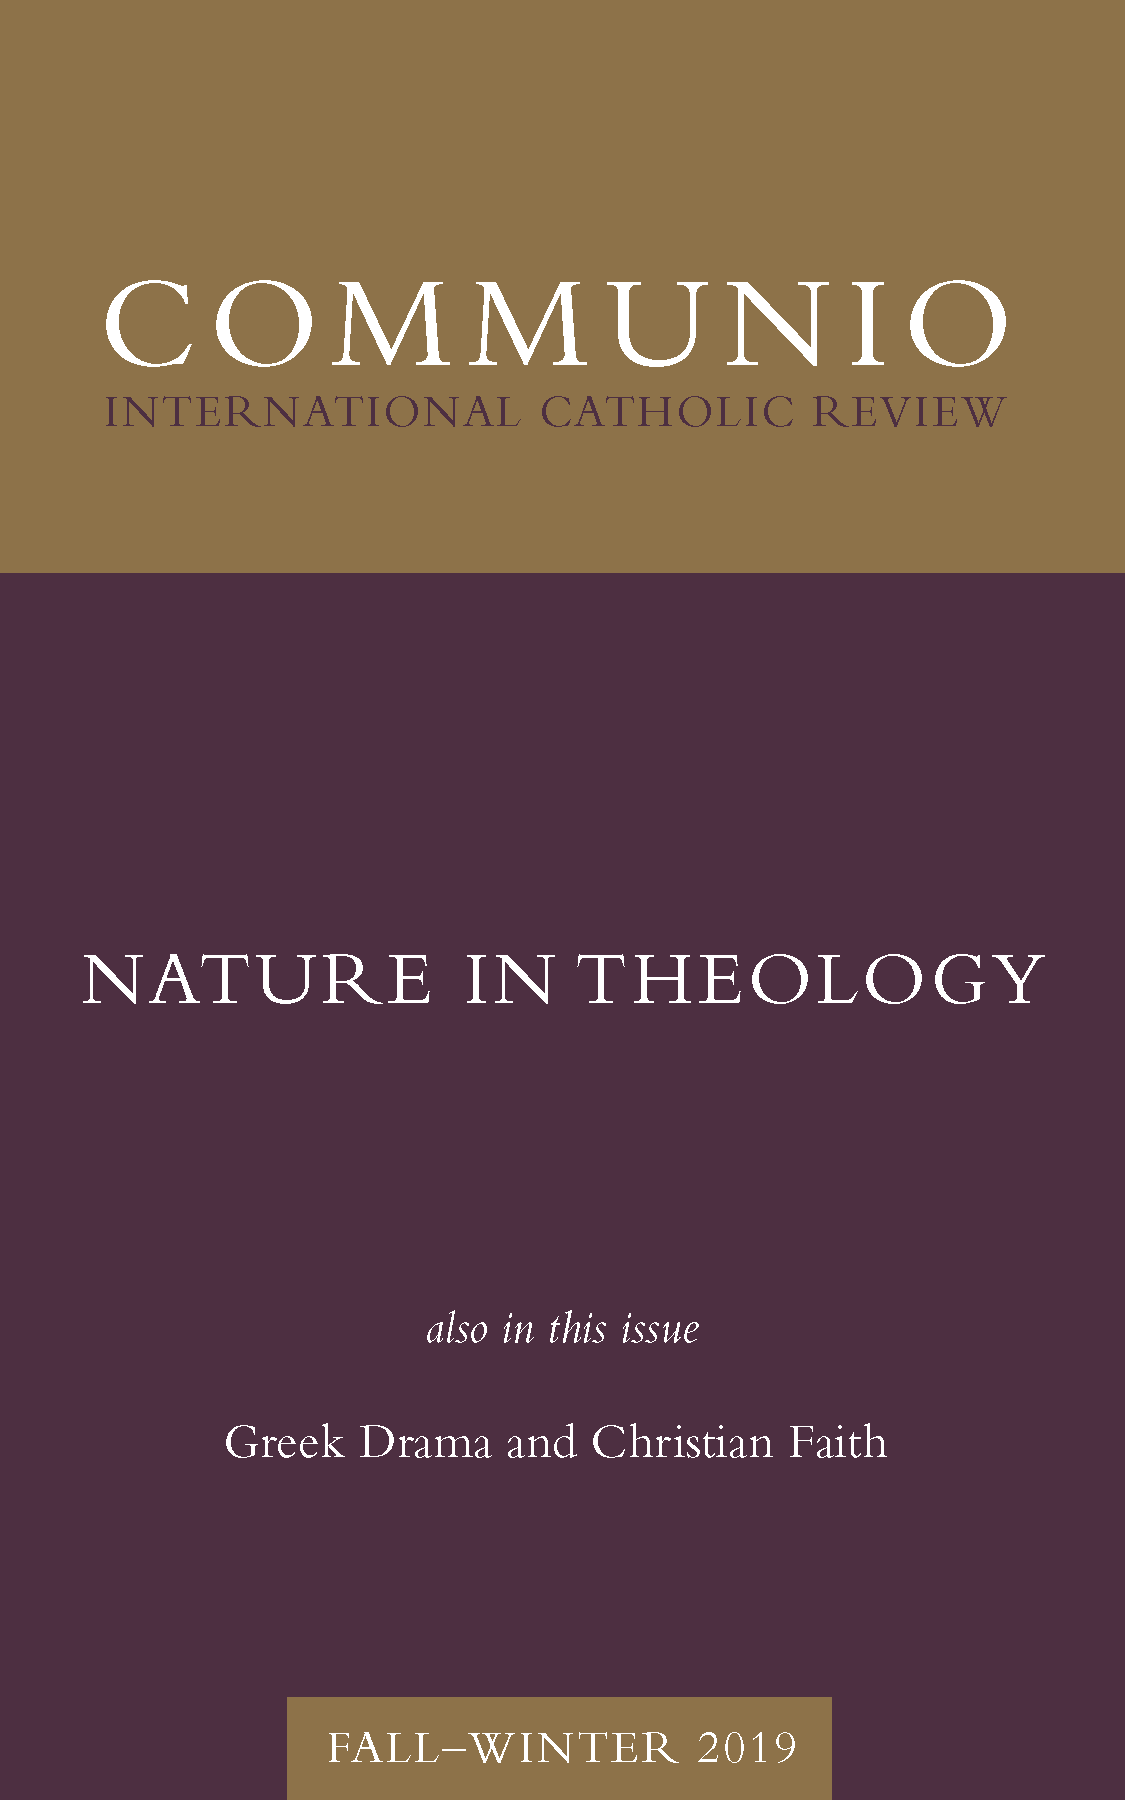 Communio - Fall–Winter 2019 - Nature in Theology